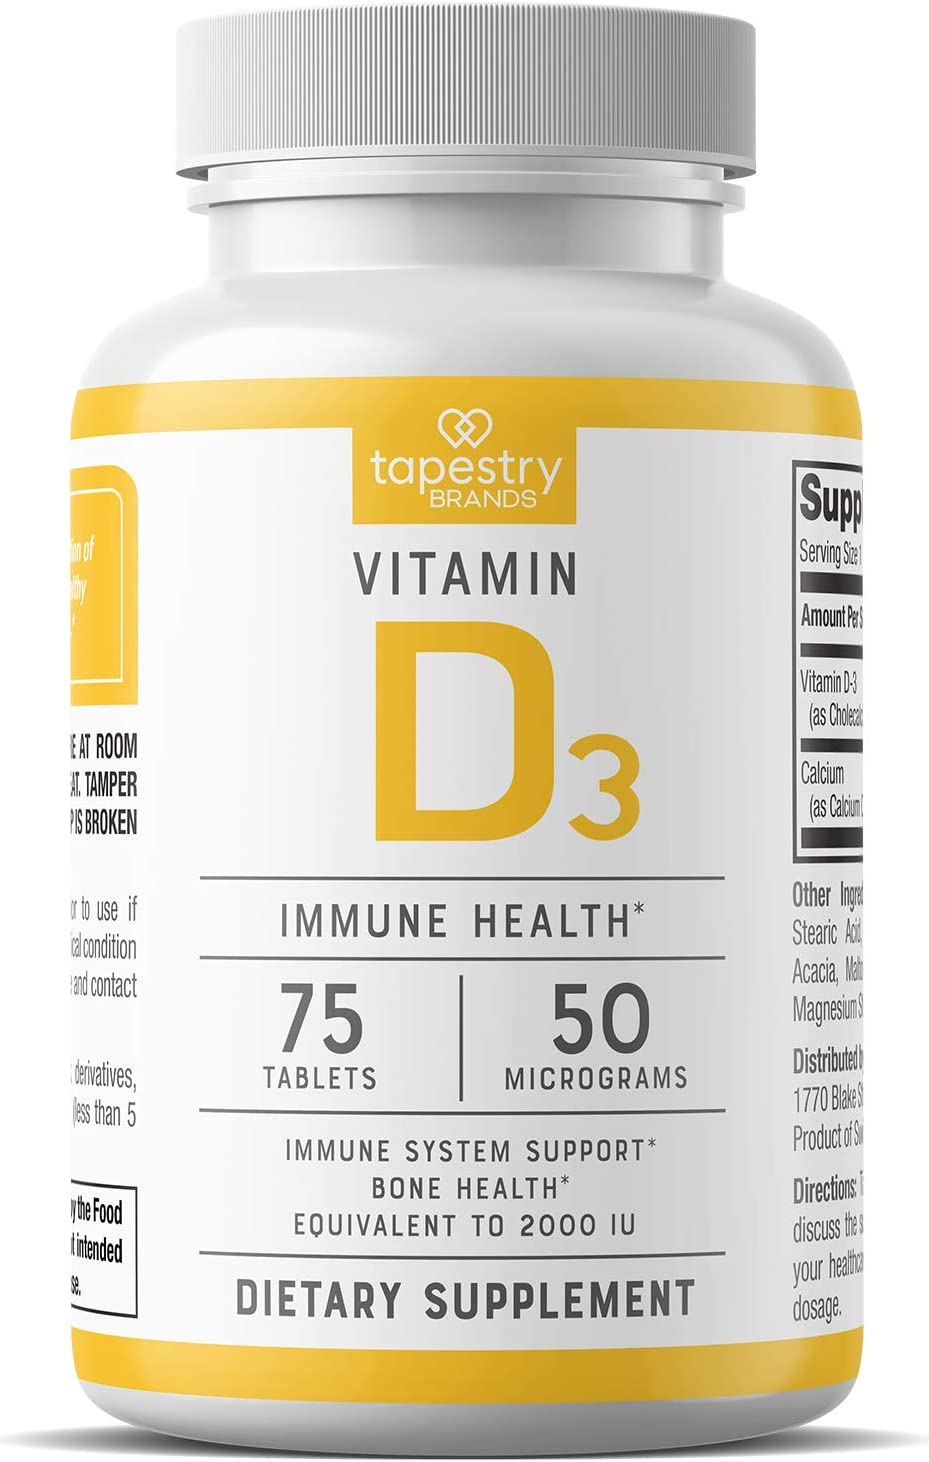 Vitamin D3 2,000 IU - Support Immune System Health, Promote Strong Bones. Non-GMO, Gluten Free, Lactose Free. 75 Count - 50 mcg (2000 IU) Tablets, by Tapestry Brands